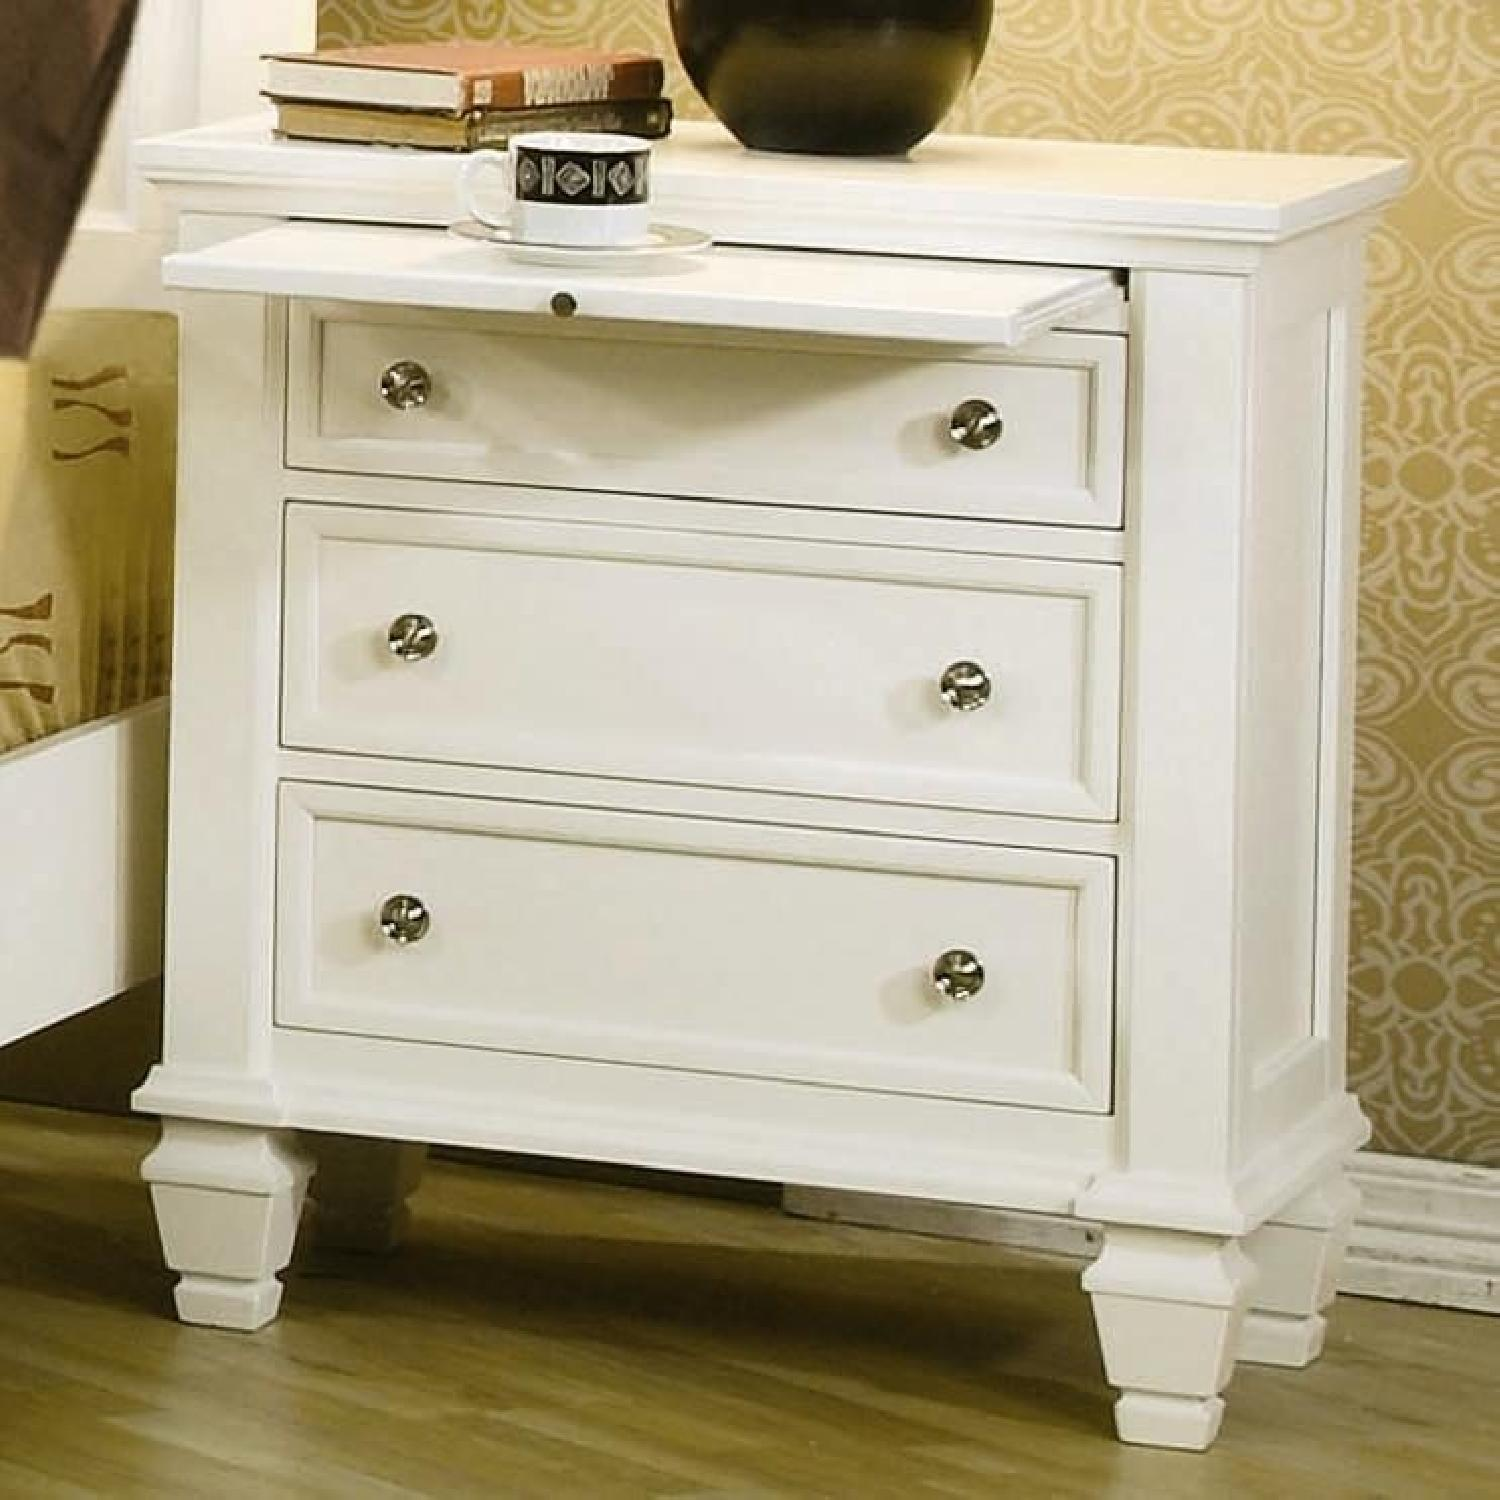 Large 3-Drawer Nightstand w/ Pull-Out Tray in White Finish - image-3